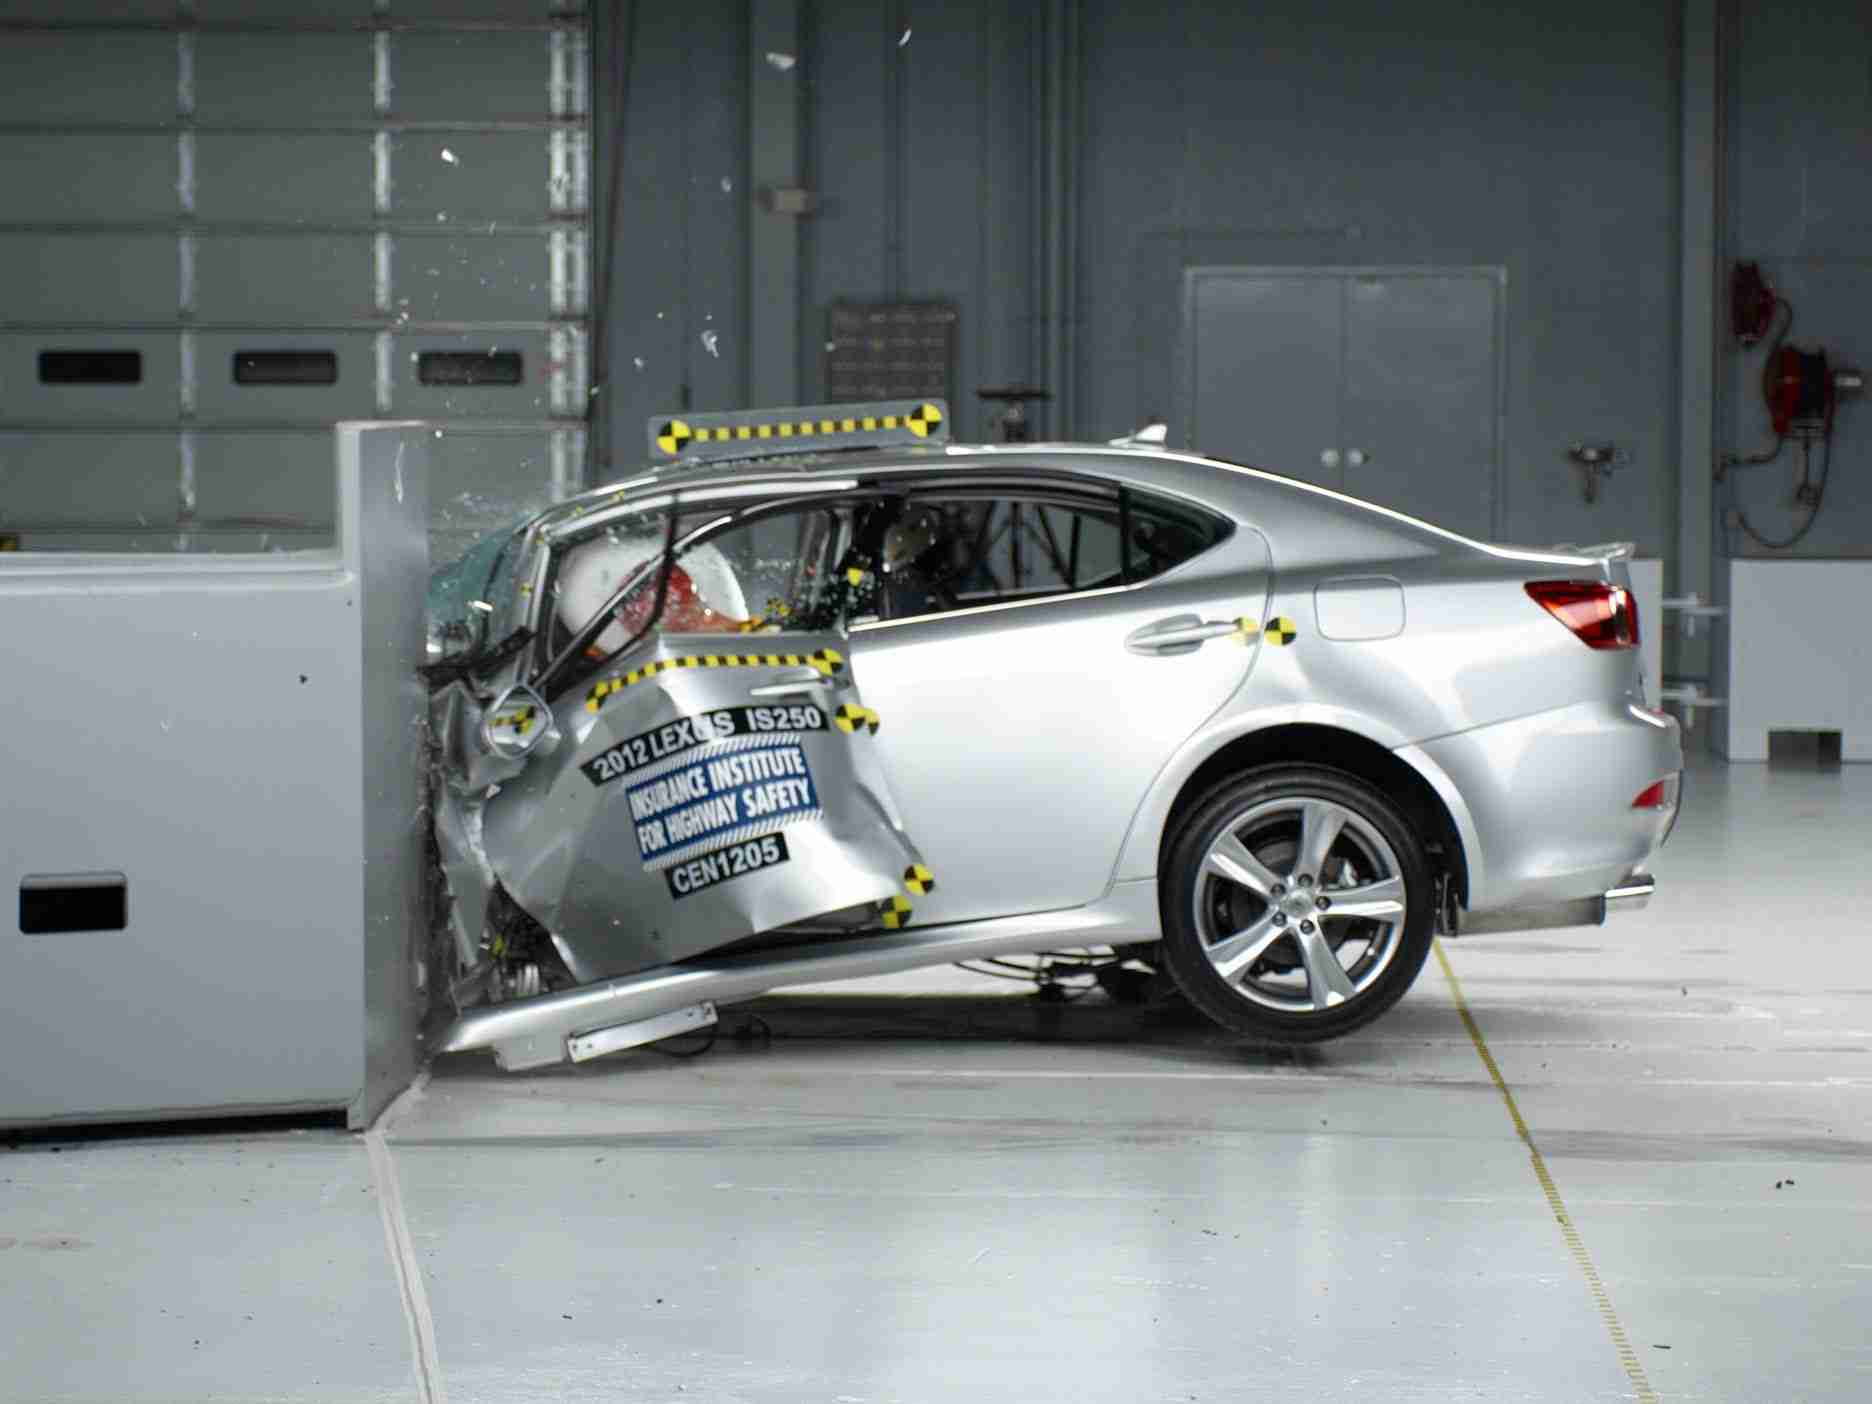 2012 Lexus IS 250/350 small overlap IIHS crash test - YouTube